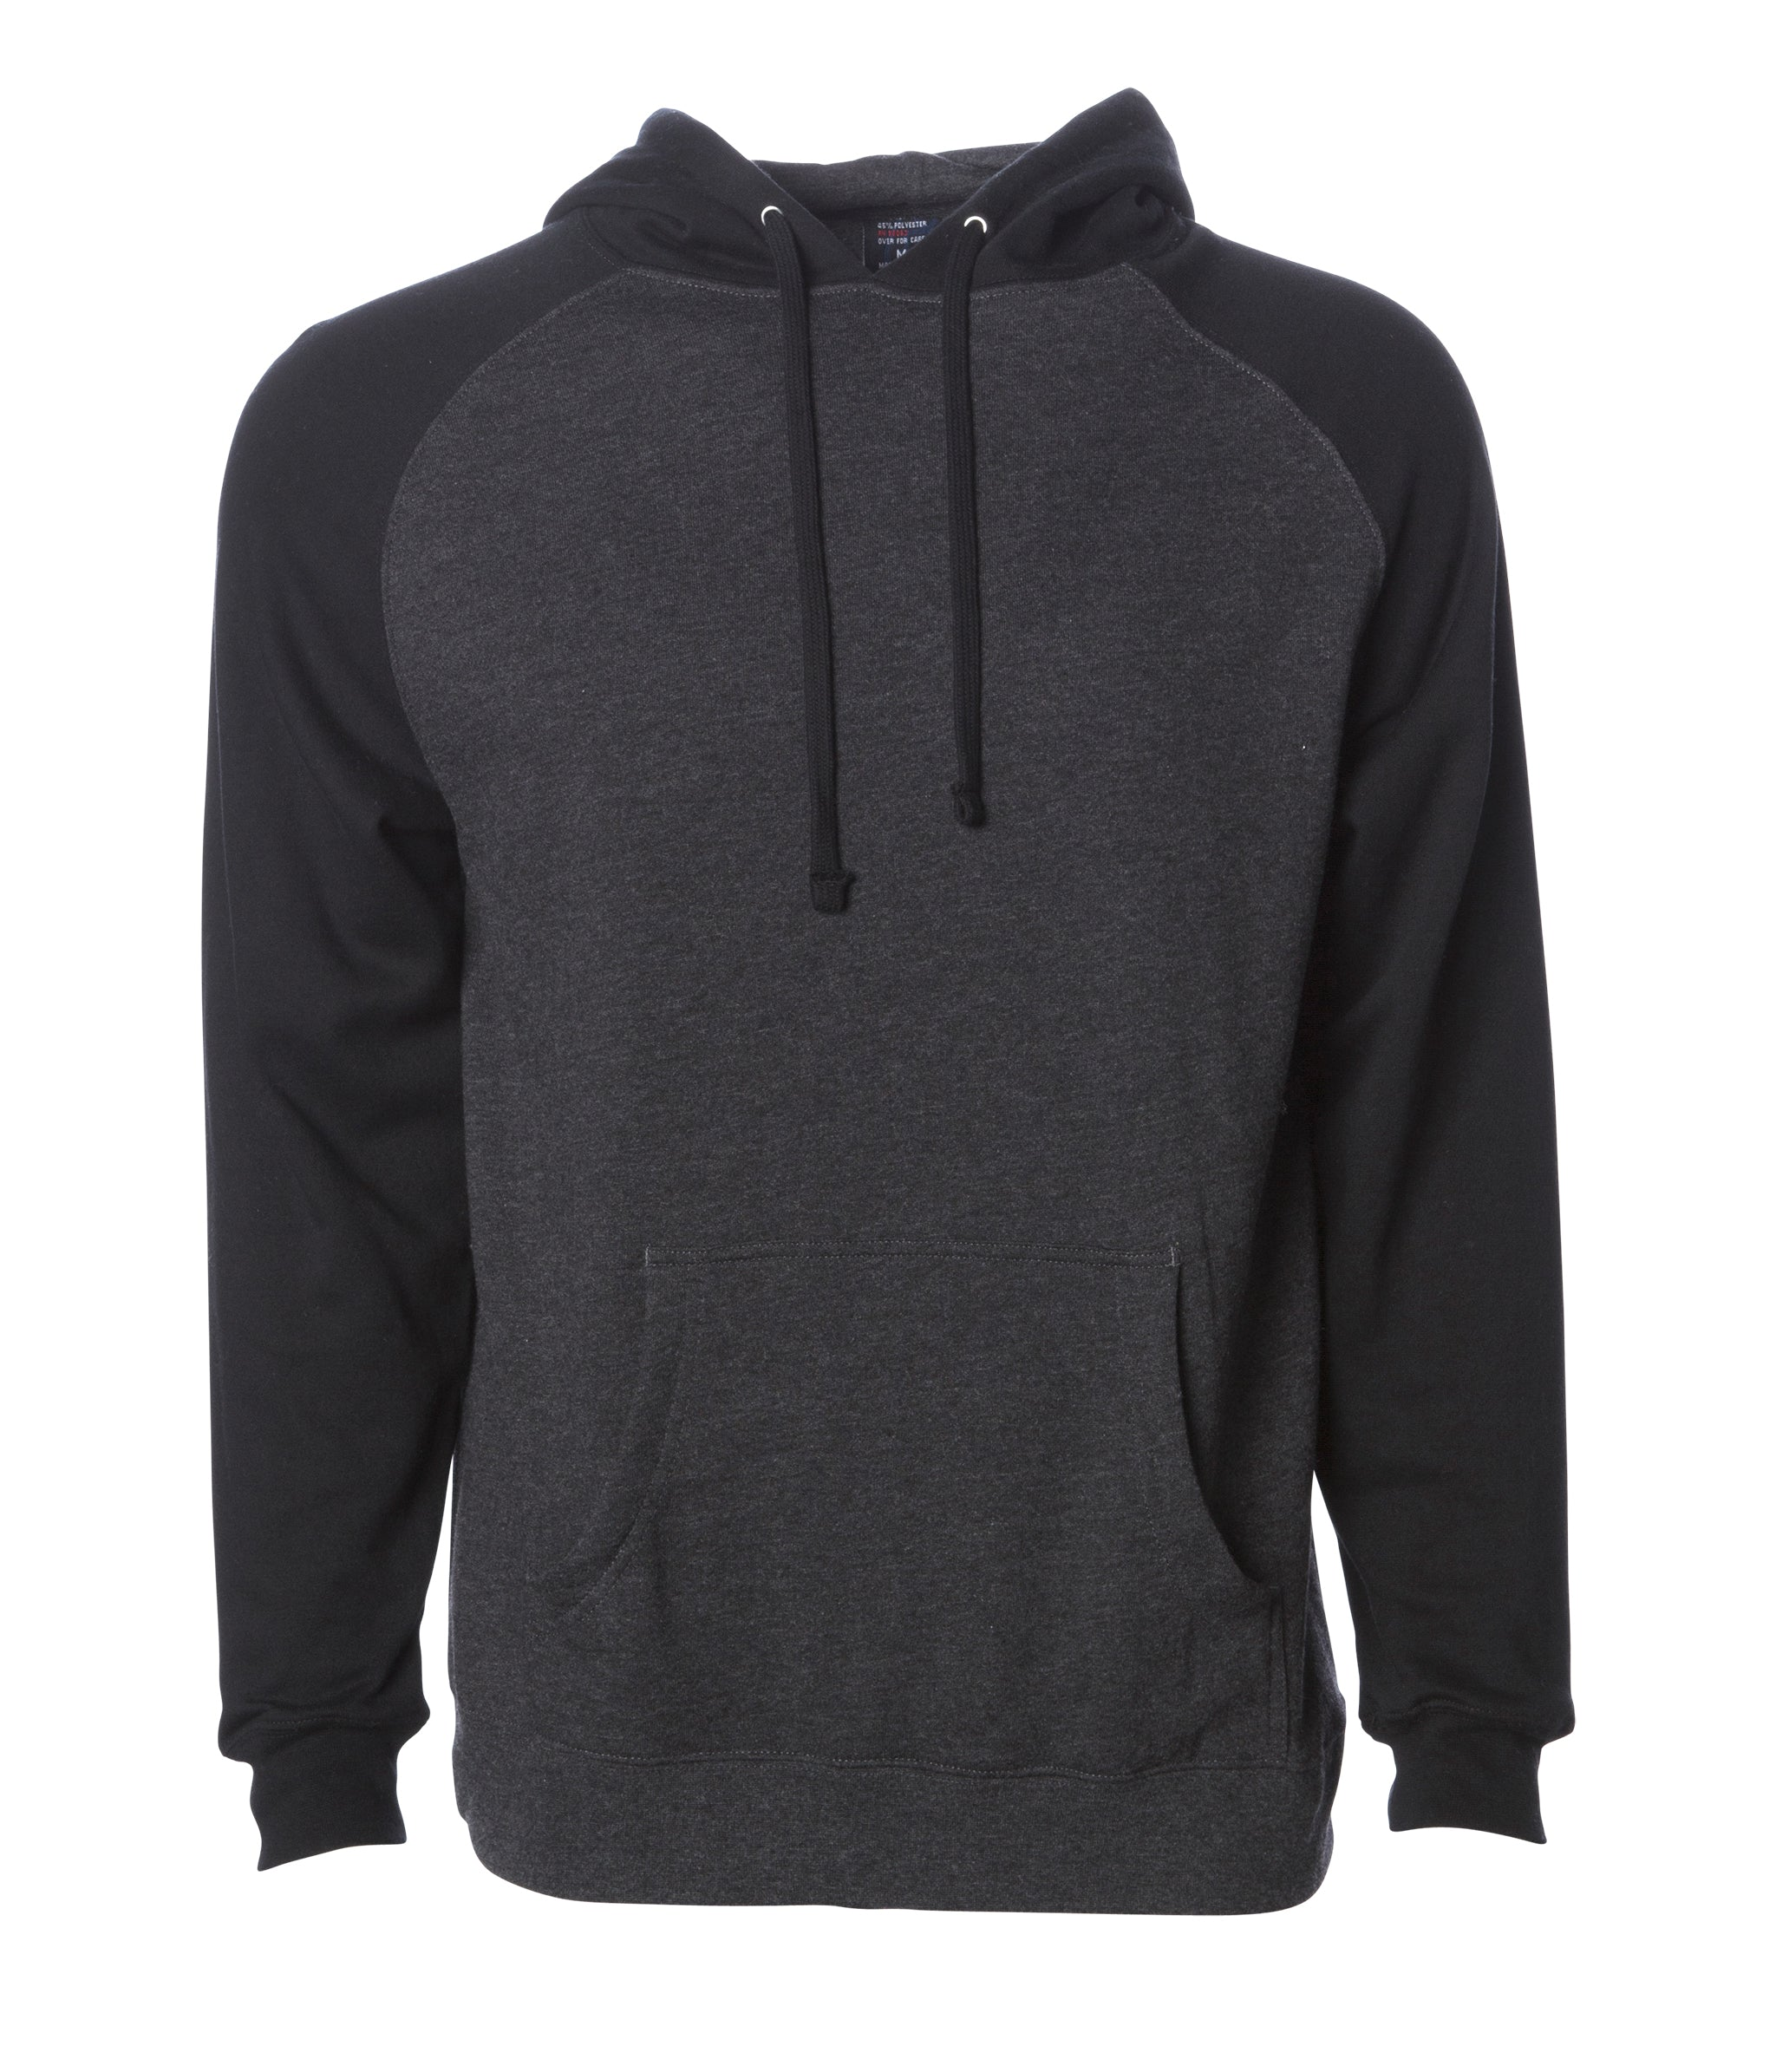 18abf222be Mens Raglan Hooded Pullover Sweatshirts | Independent Trading Company